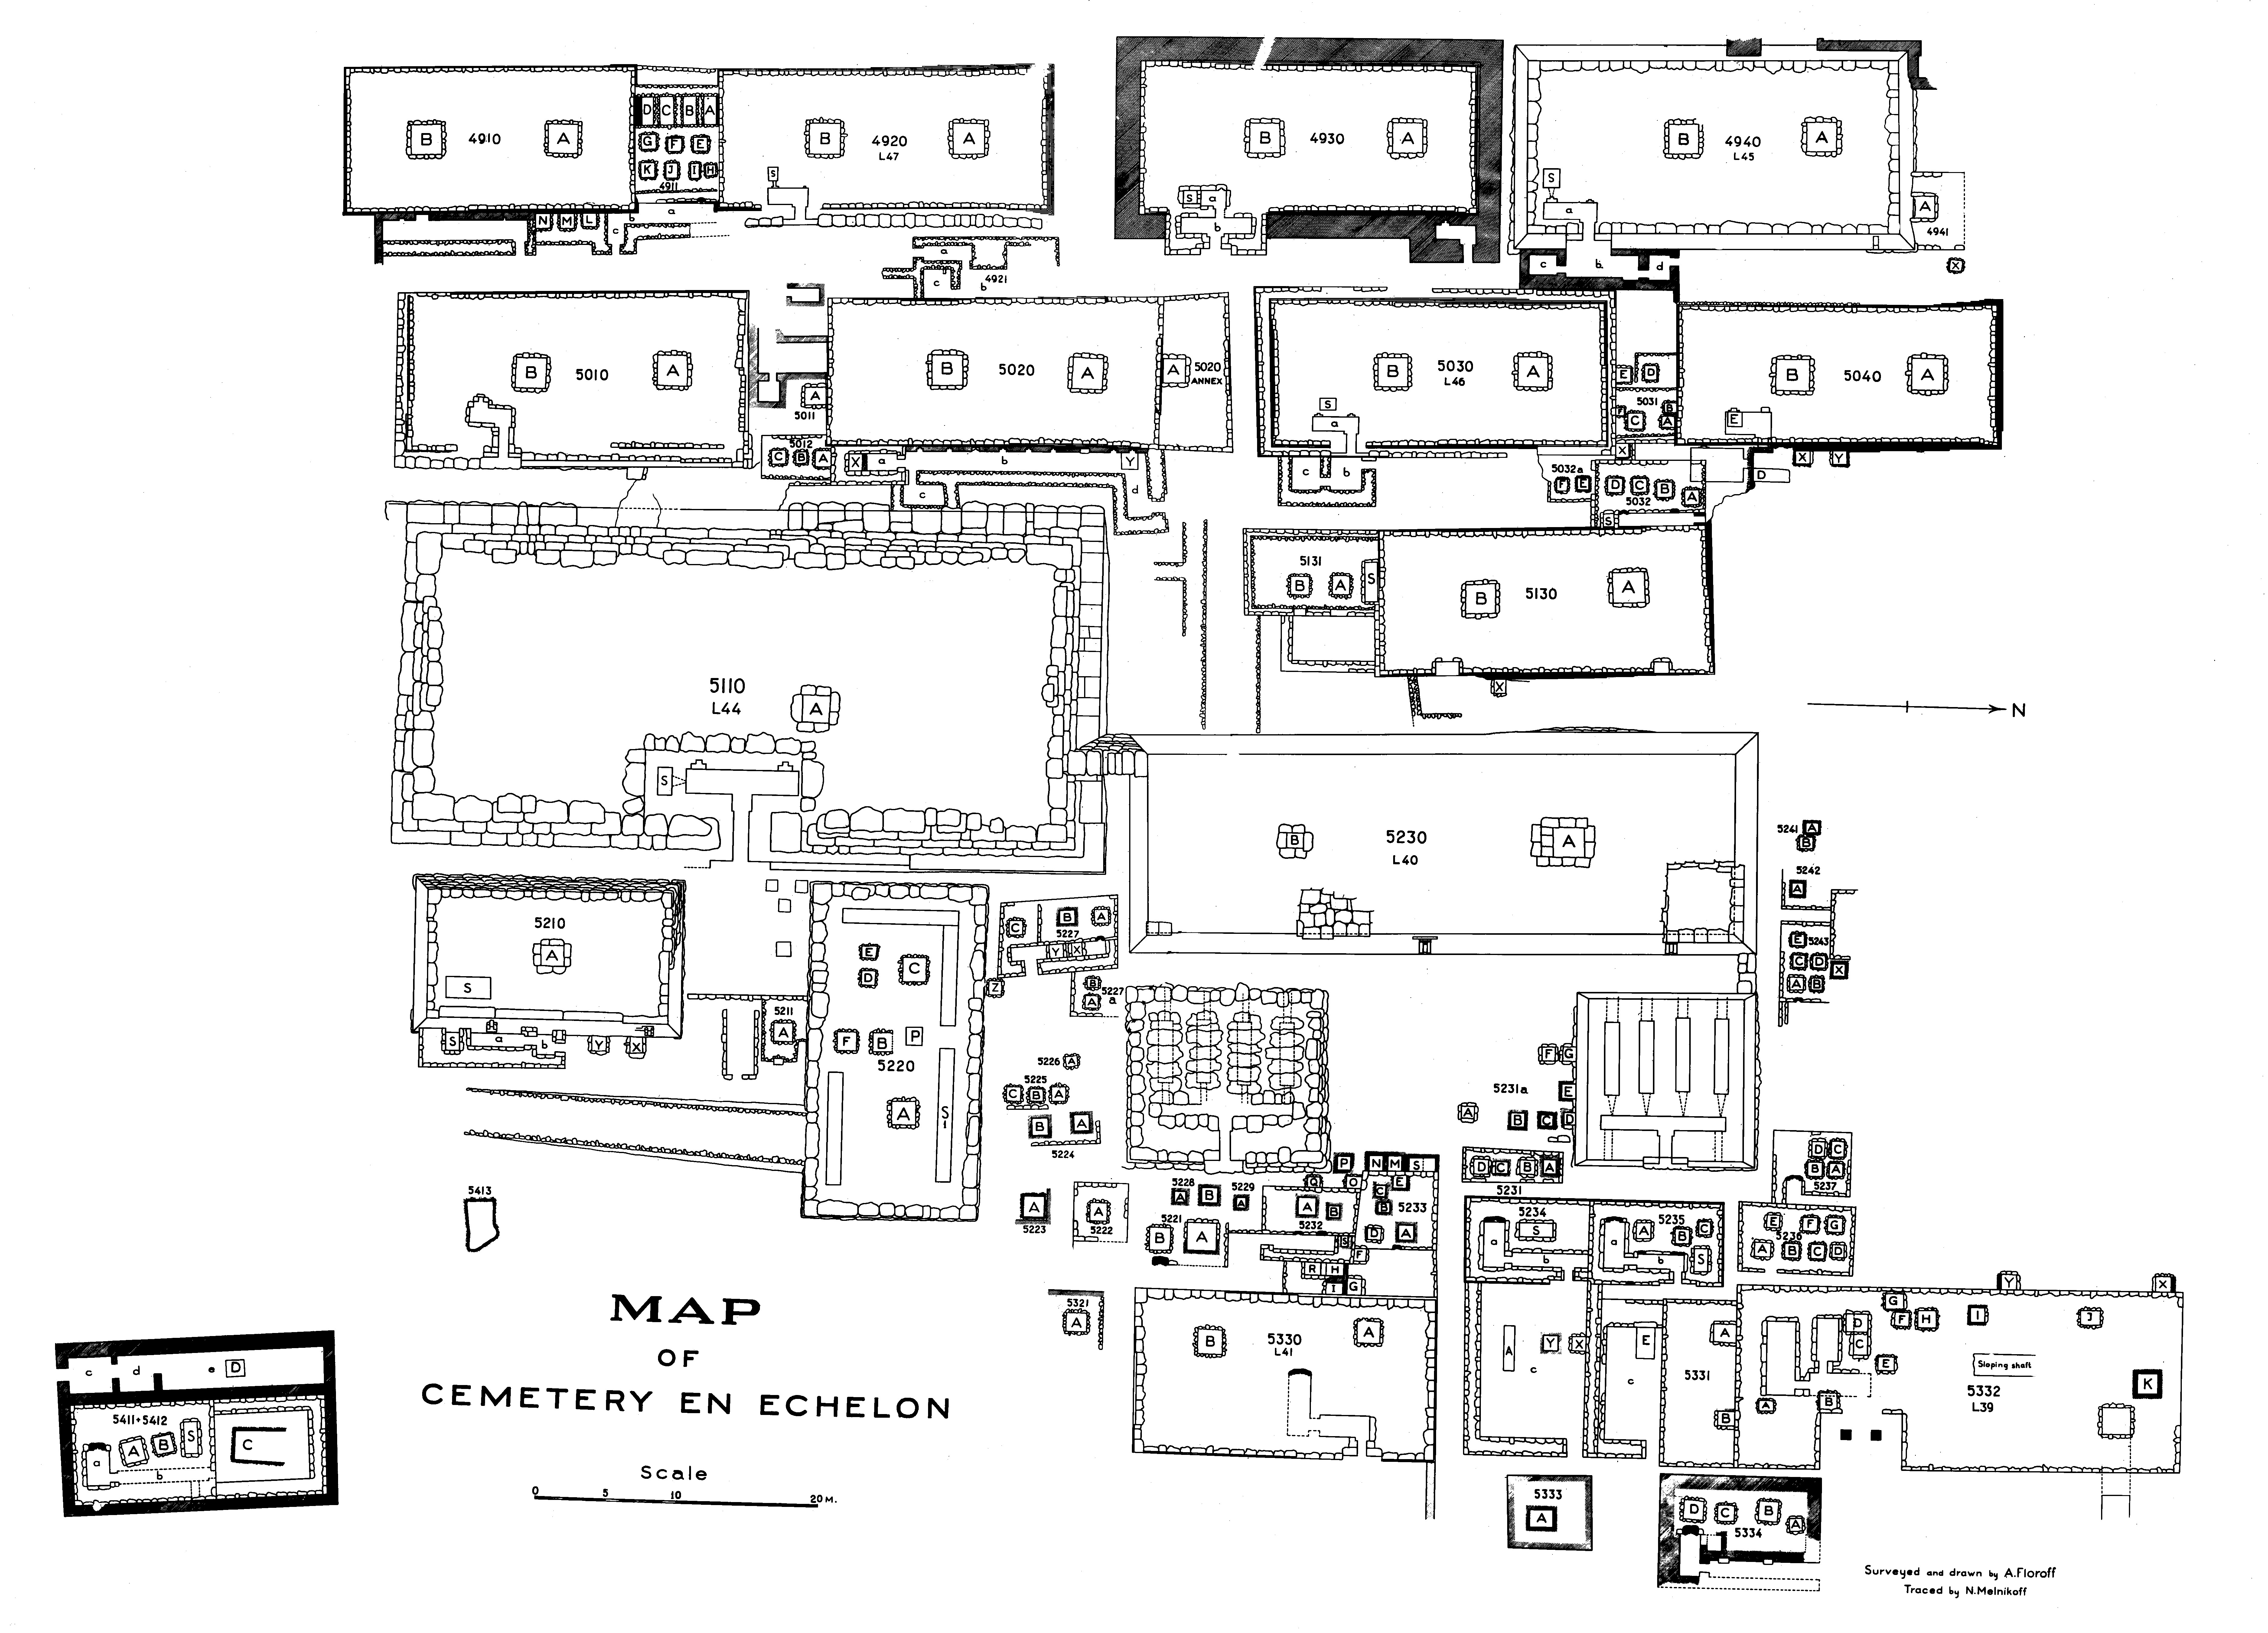 Maps and plans: Plan of Cemetery en Echelon: cemetery G 5000